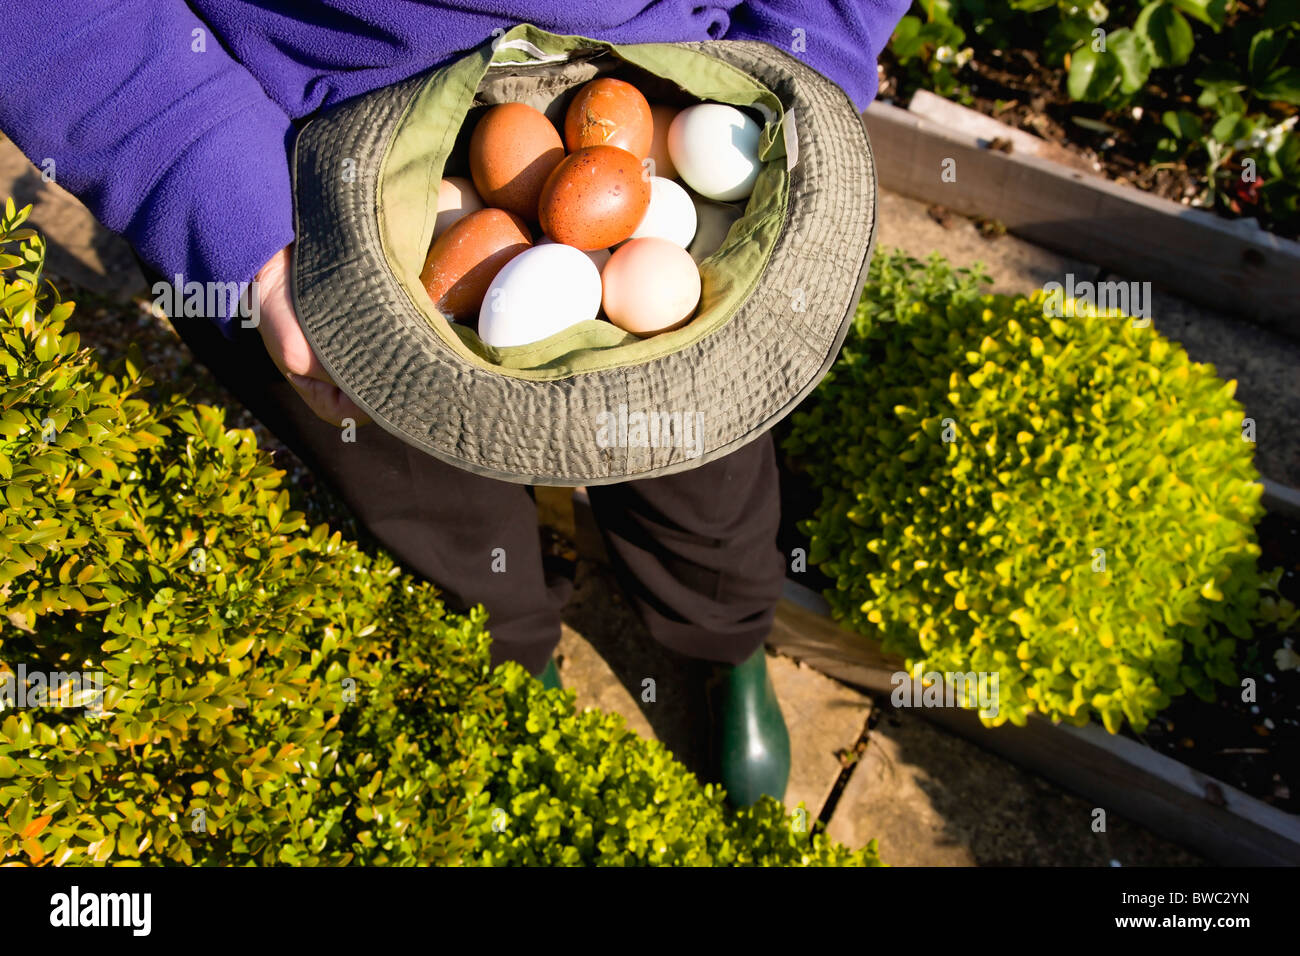 Agriculture, Poultry, Chickens, Lady in her allotment holding a hat containing a variety of free range eggs - Stock Image